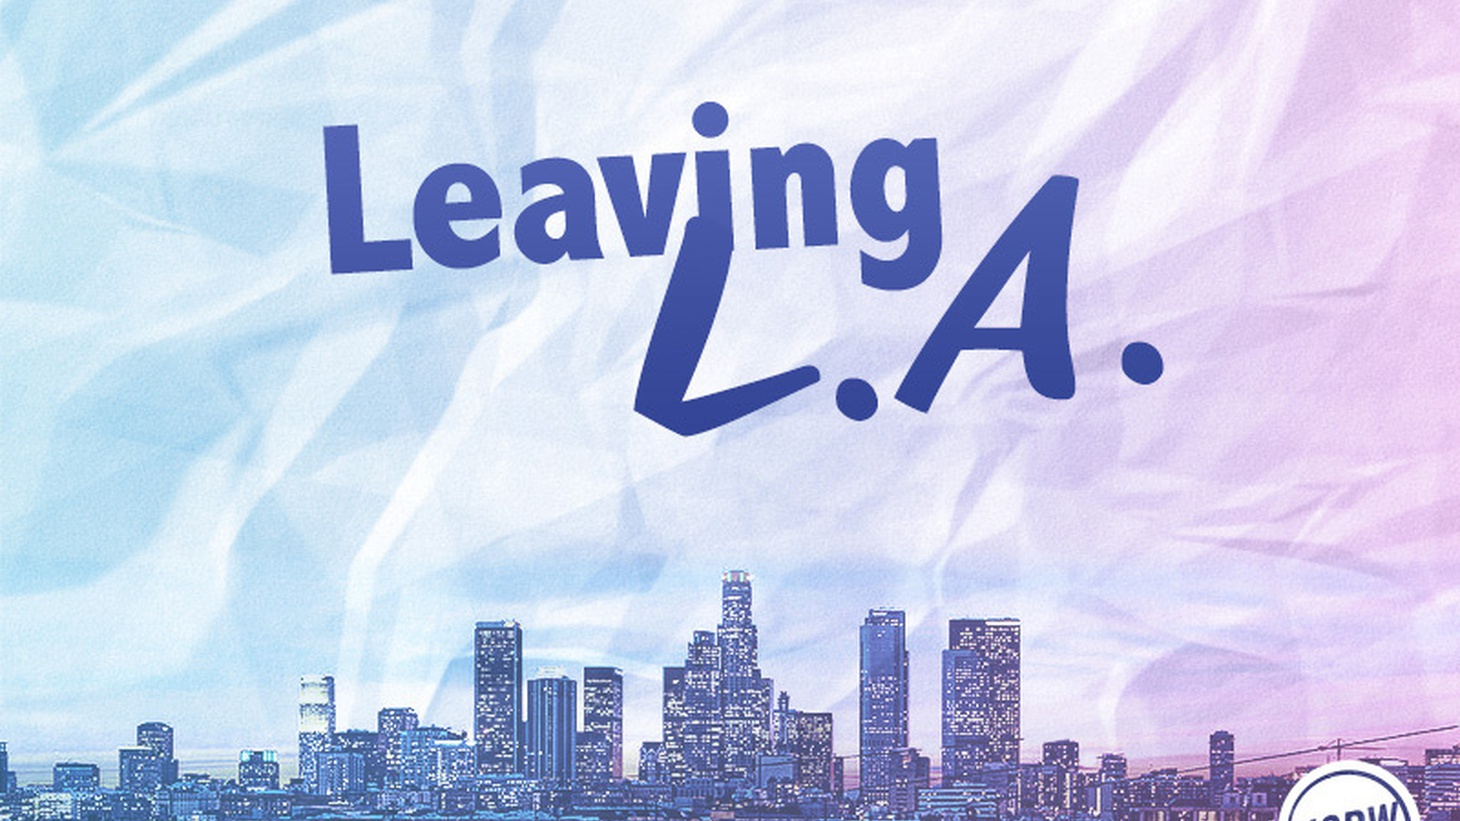 Housing has become so expensive in the LA Area that beaches, warm winters and cultural diversity aren't enough anymore to keep a lot of people from moving away. We hear from some who have struggled with staying and talk with regional thinkers about the loss of both young people and economic diversity.